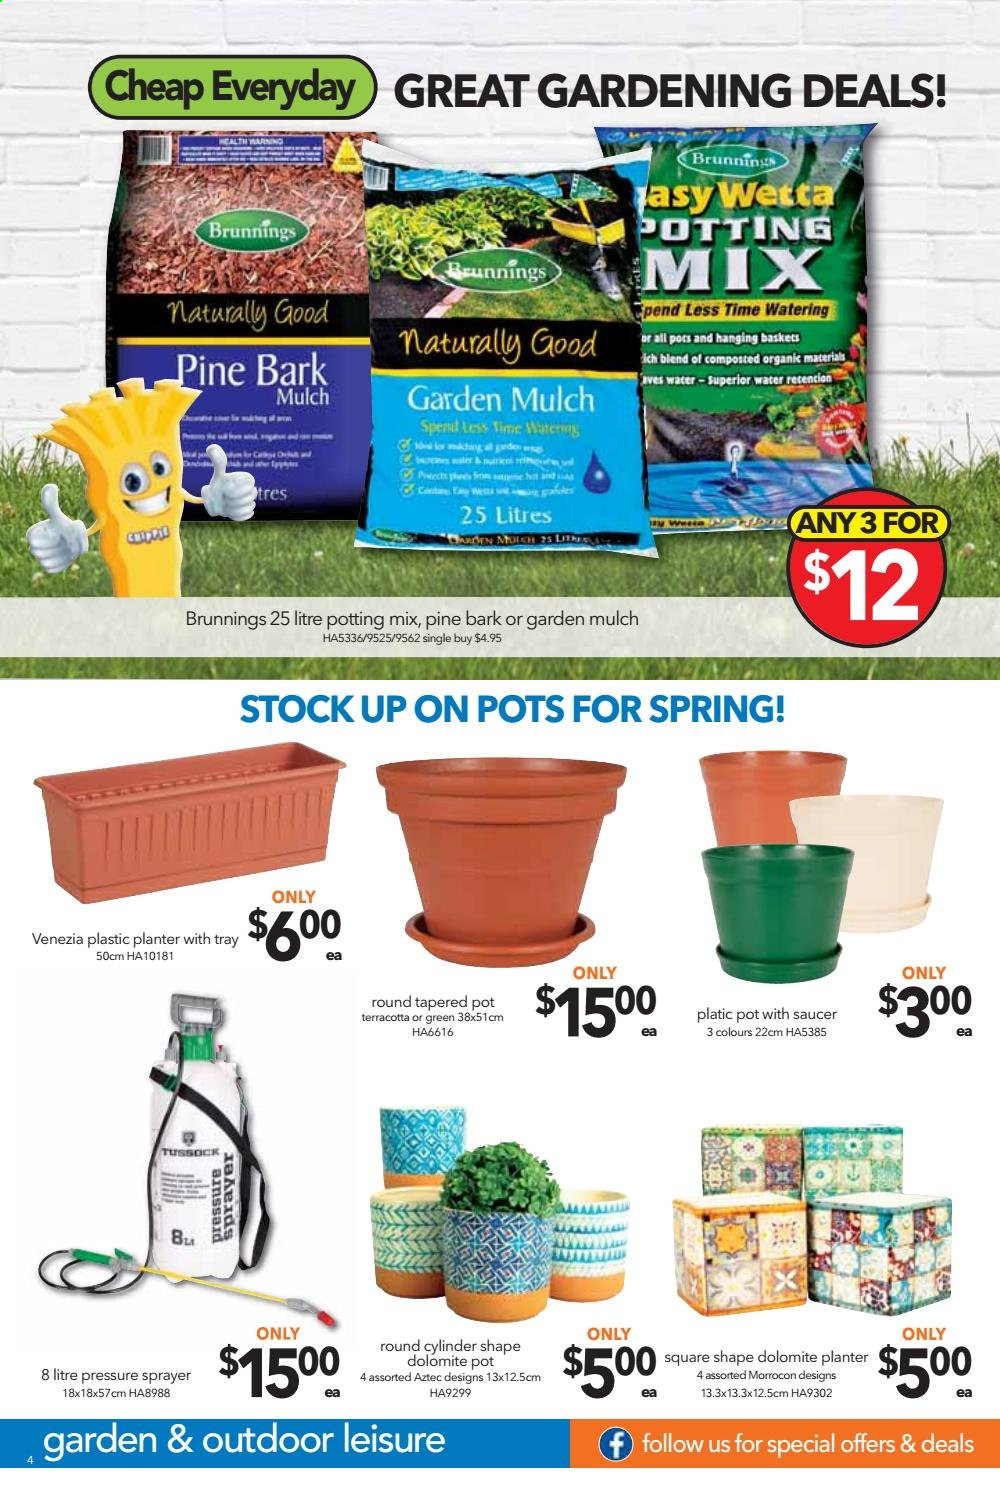 Cheap as Chips catalogue and weekly specials 7 8 2019 - 13 8